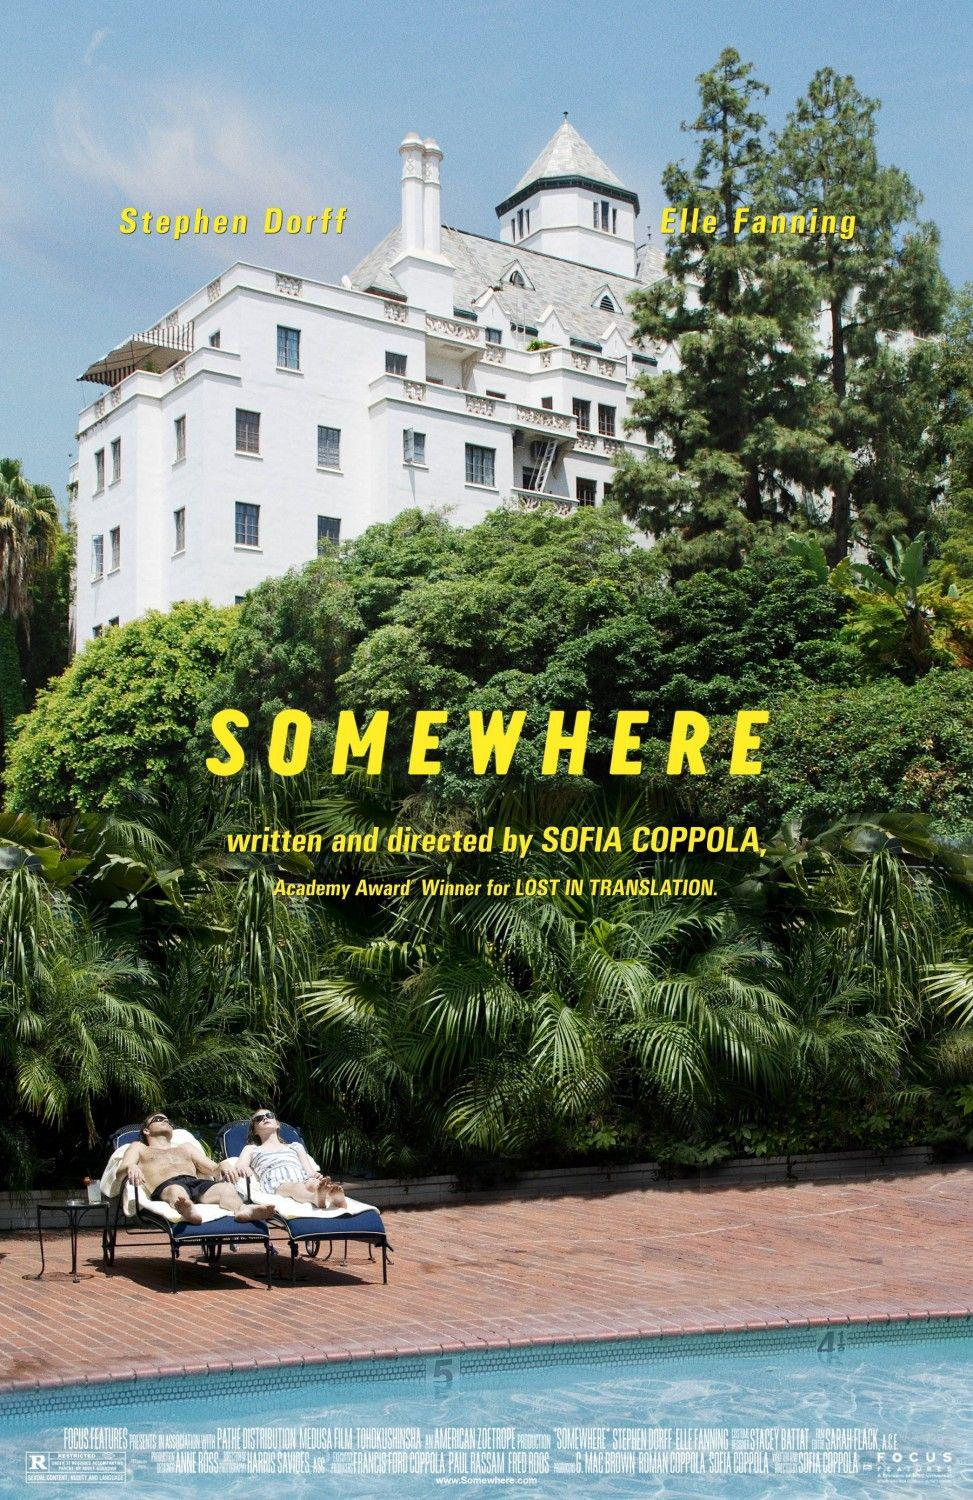 Film Poster - Somewhere - Stephen Dorff - Elle Fanning